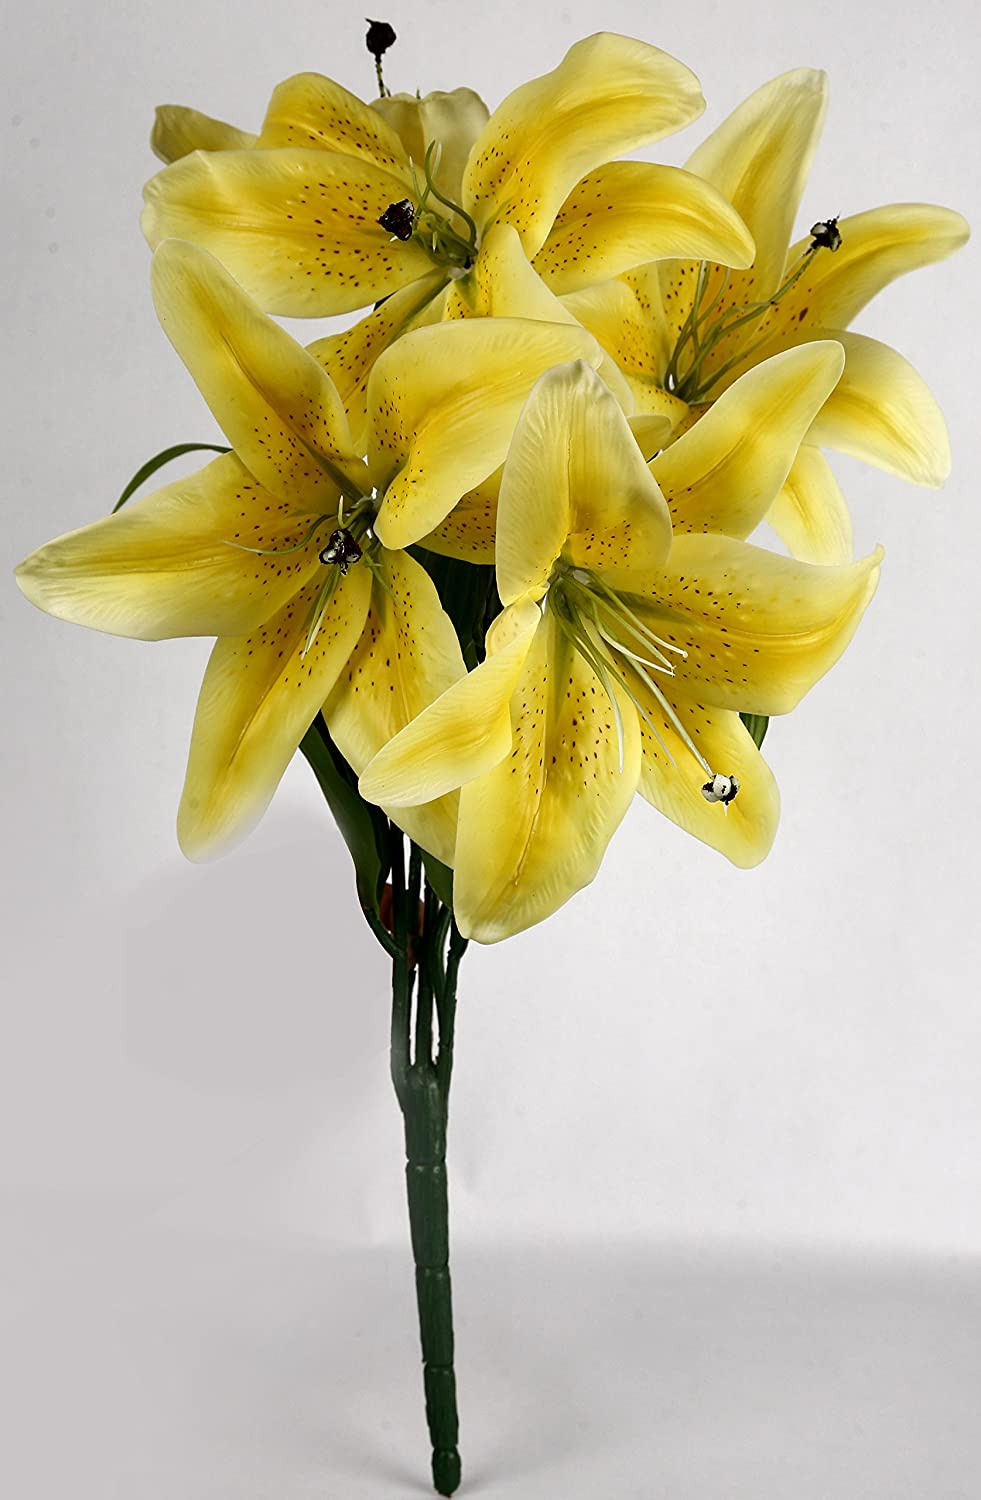 Buy uberlyfe real touch and look 5 artificial flower tiger lily sun buy uberlyfe real touch and look 5 artificial flower tiger lily sun kissed yellow 4 bunches online at low prices in india amazon izmirmasajfo